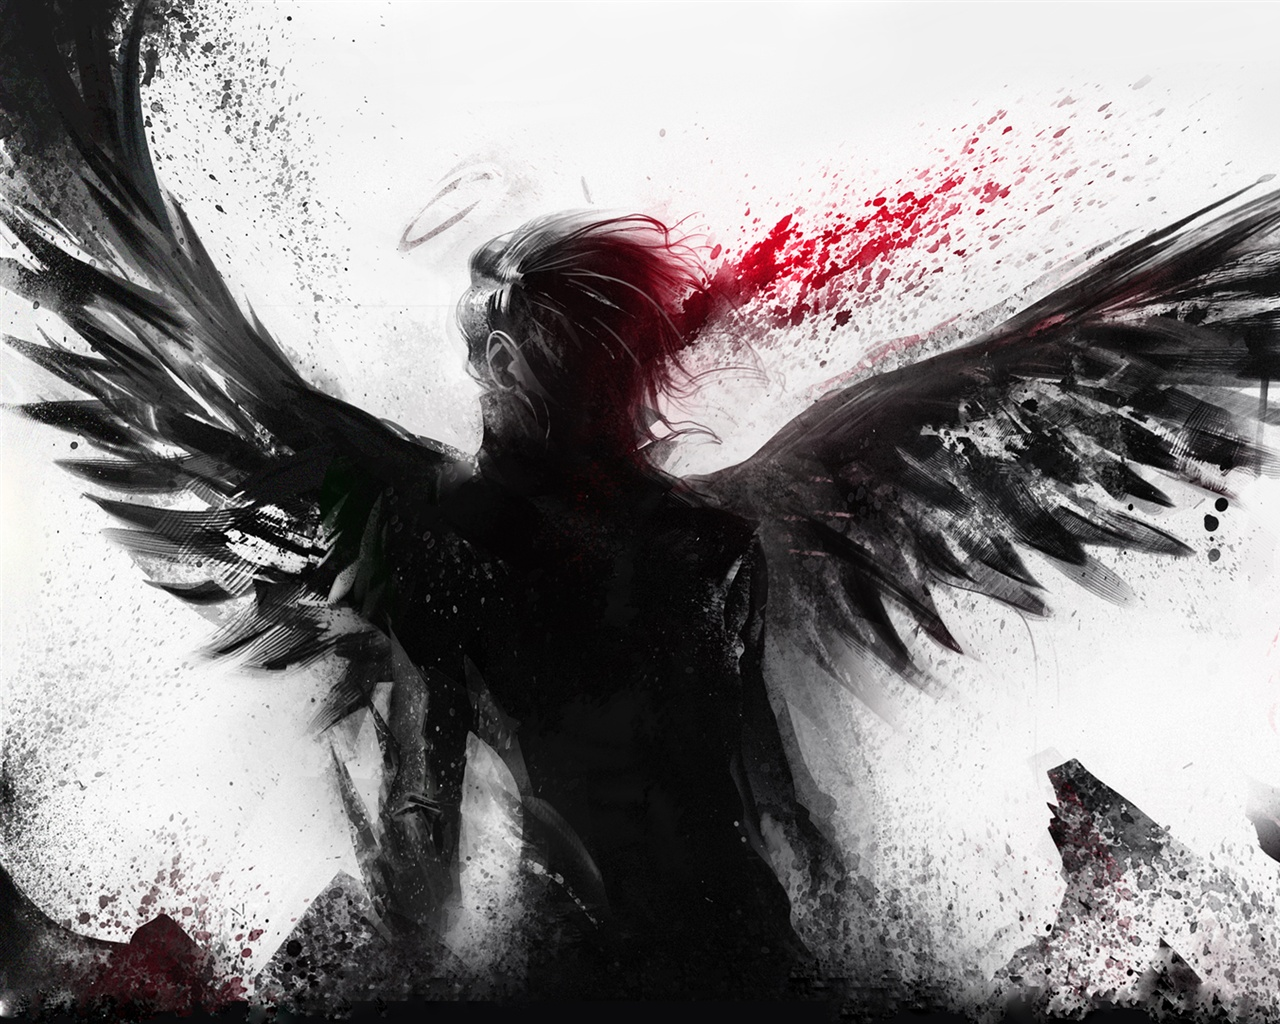 Gothic Girl Wallpaper 640x960 Wallpaper Bleeding Of The Black Angel 1920x1200 Hd Picture